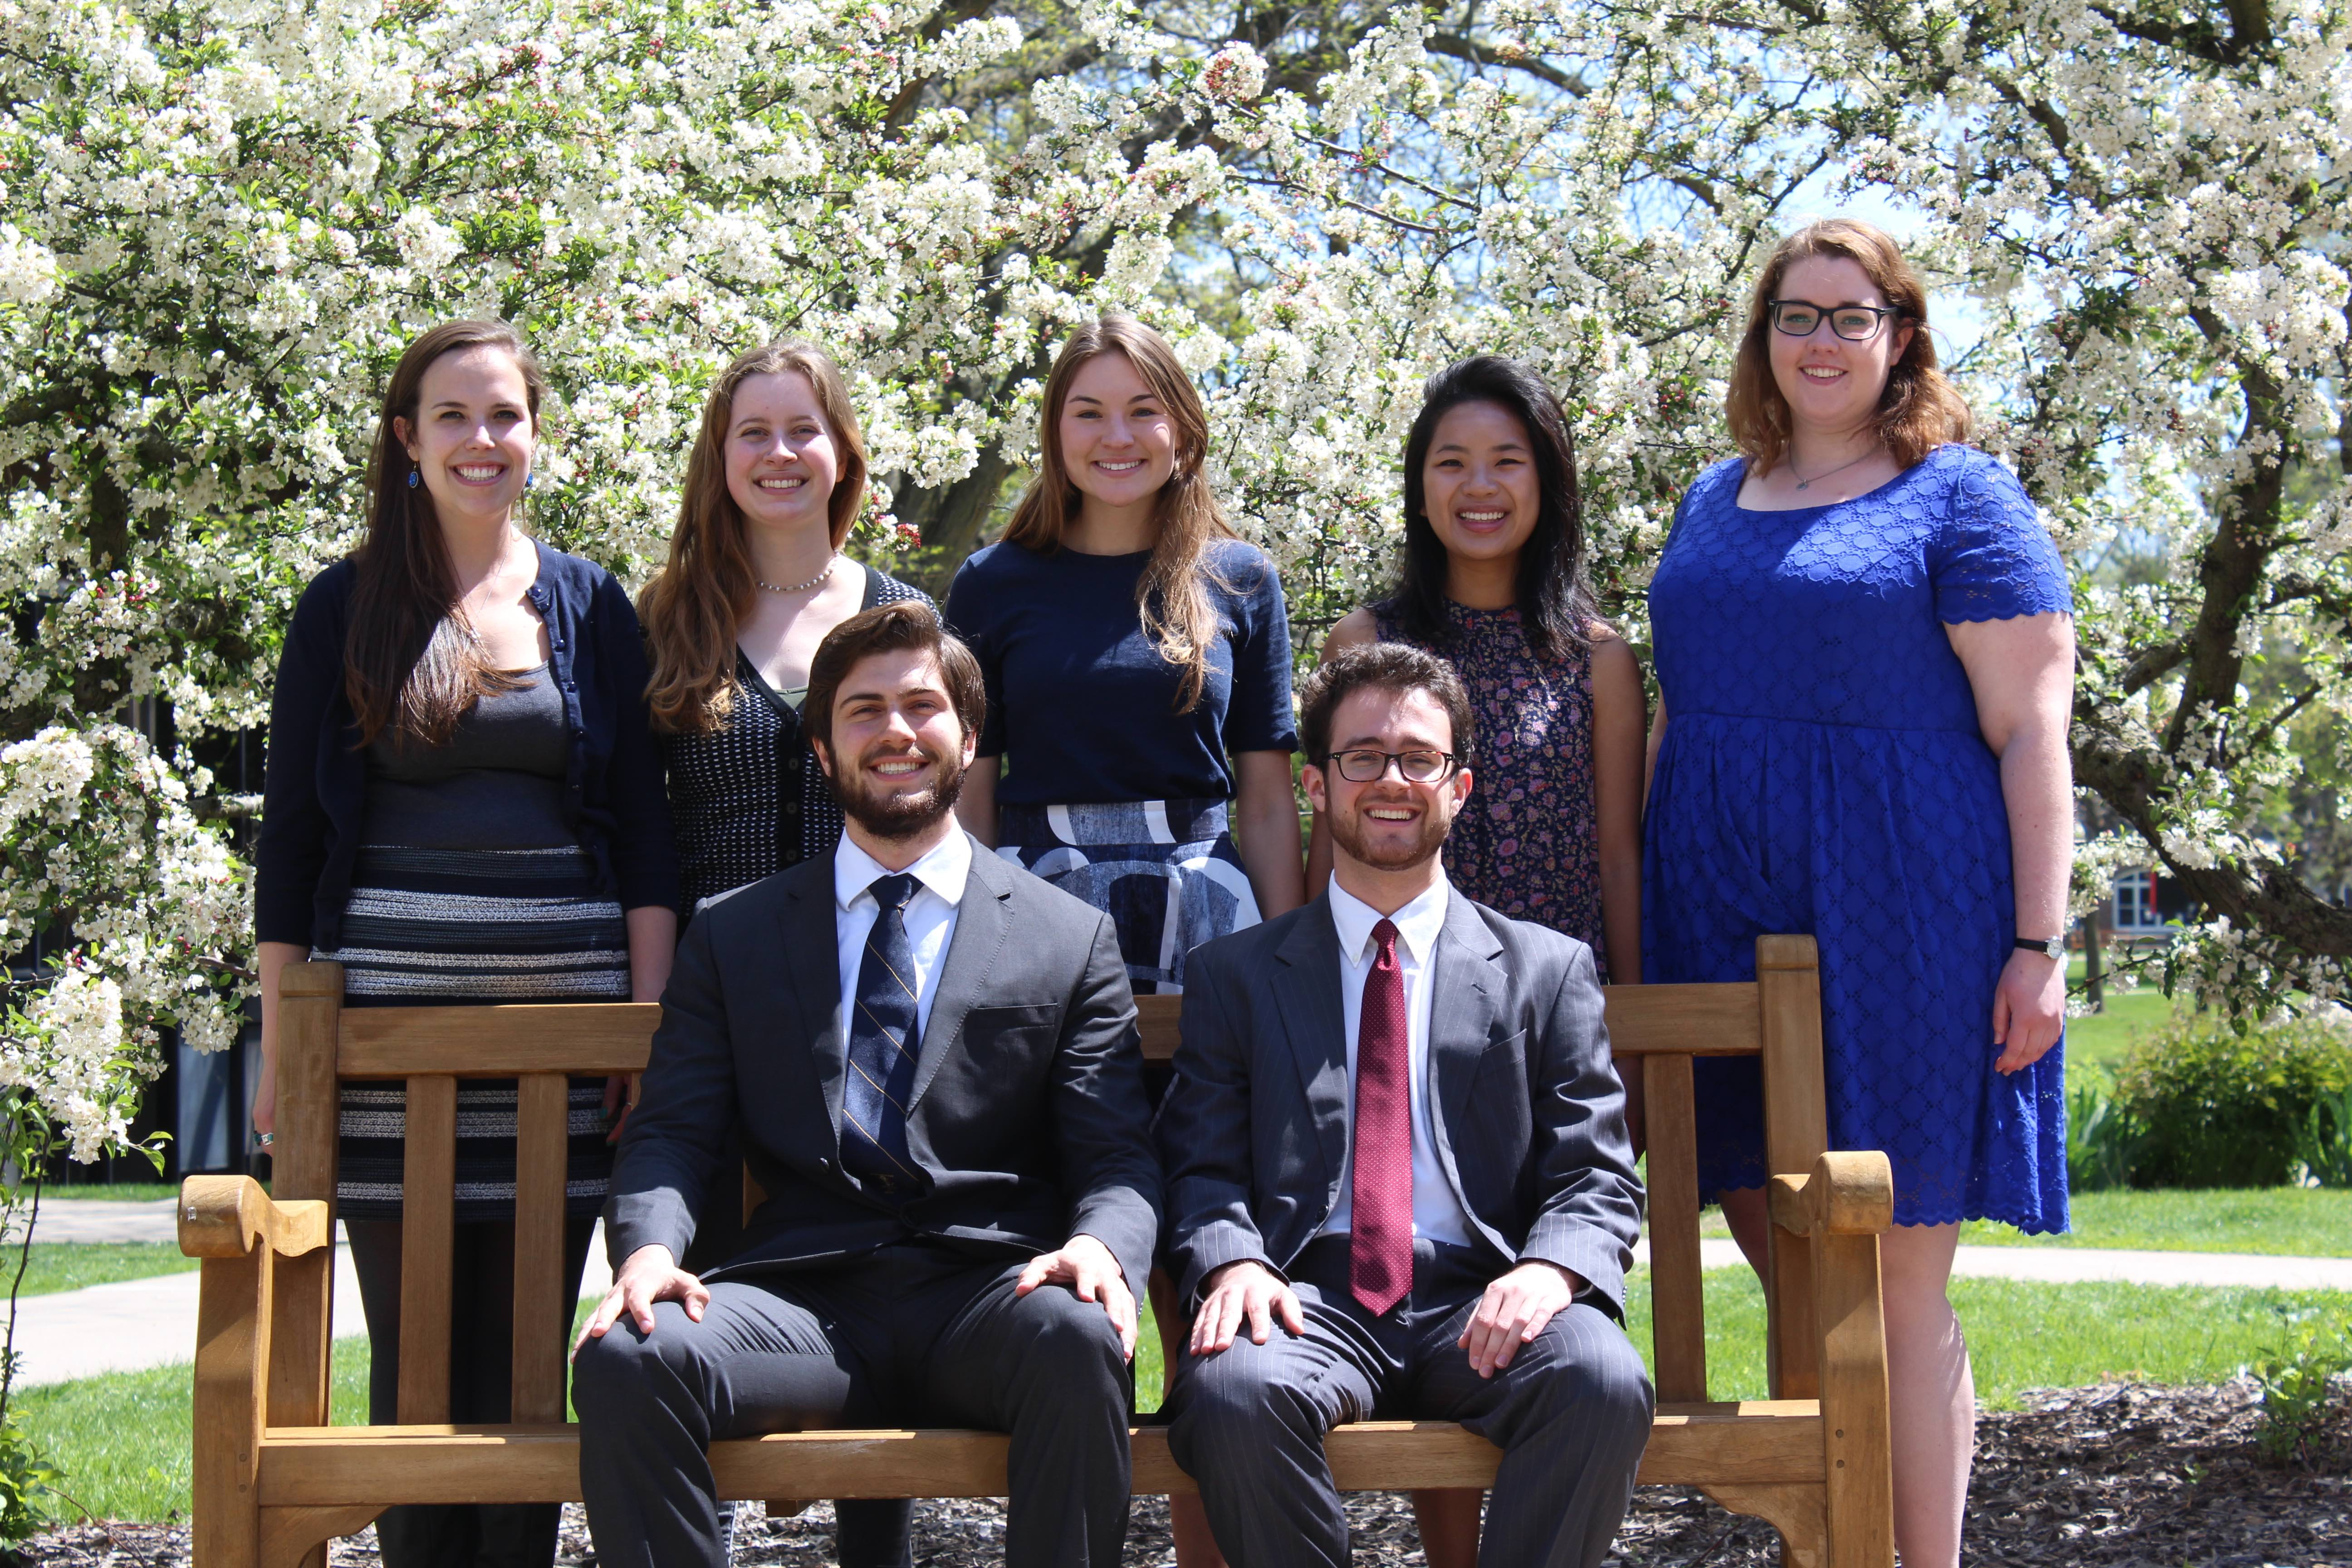 From left: Fulbright recipients recently gathered on the Grinnell Campus. Seated: Ian Stout, Kieran Connolly. Standing: Mollie Jo Blahunka, Caleigh Ryan, Samantha Fitzsimmons Schoenberger, Sophie Wright and Stella Gatzke. Not pictured: Lilianna Bagnoli.